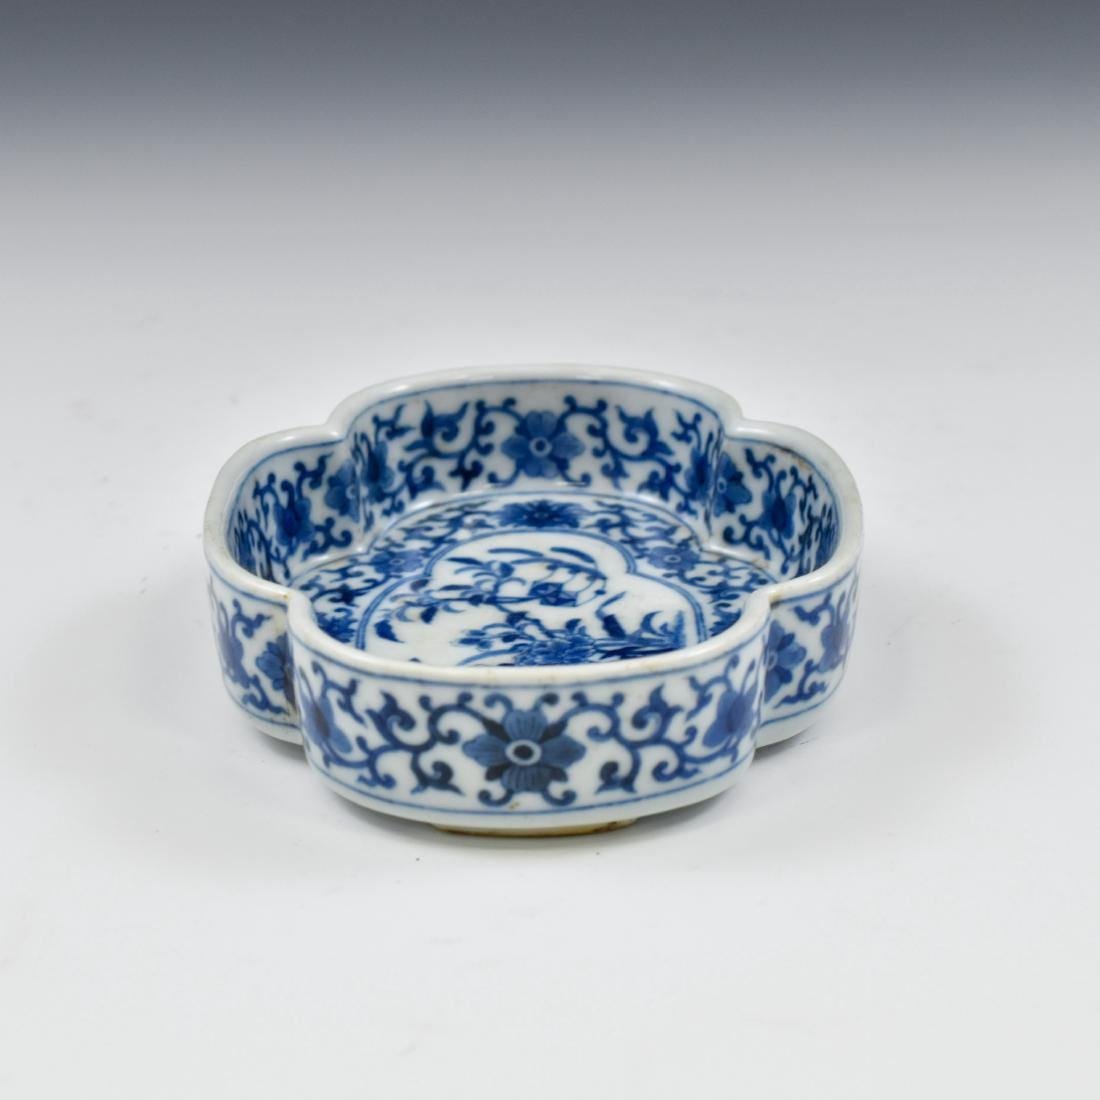 QING CHINESE NARCISSUS PORCELAIN PLATE - 5